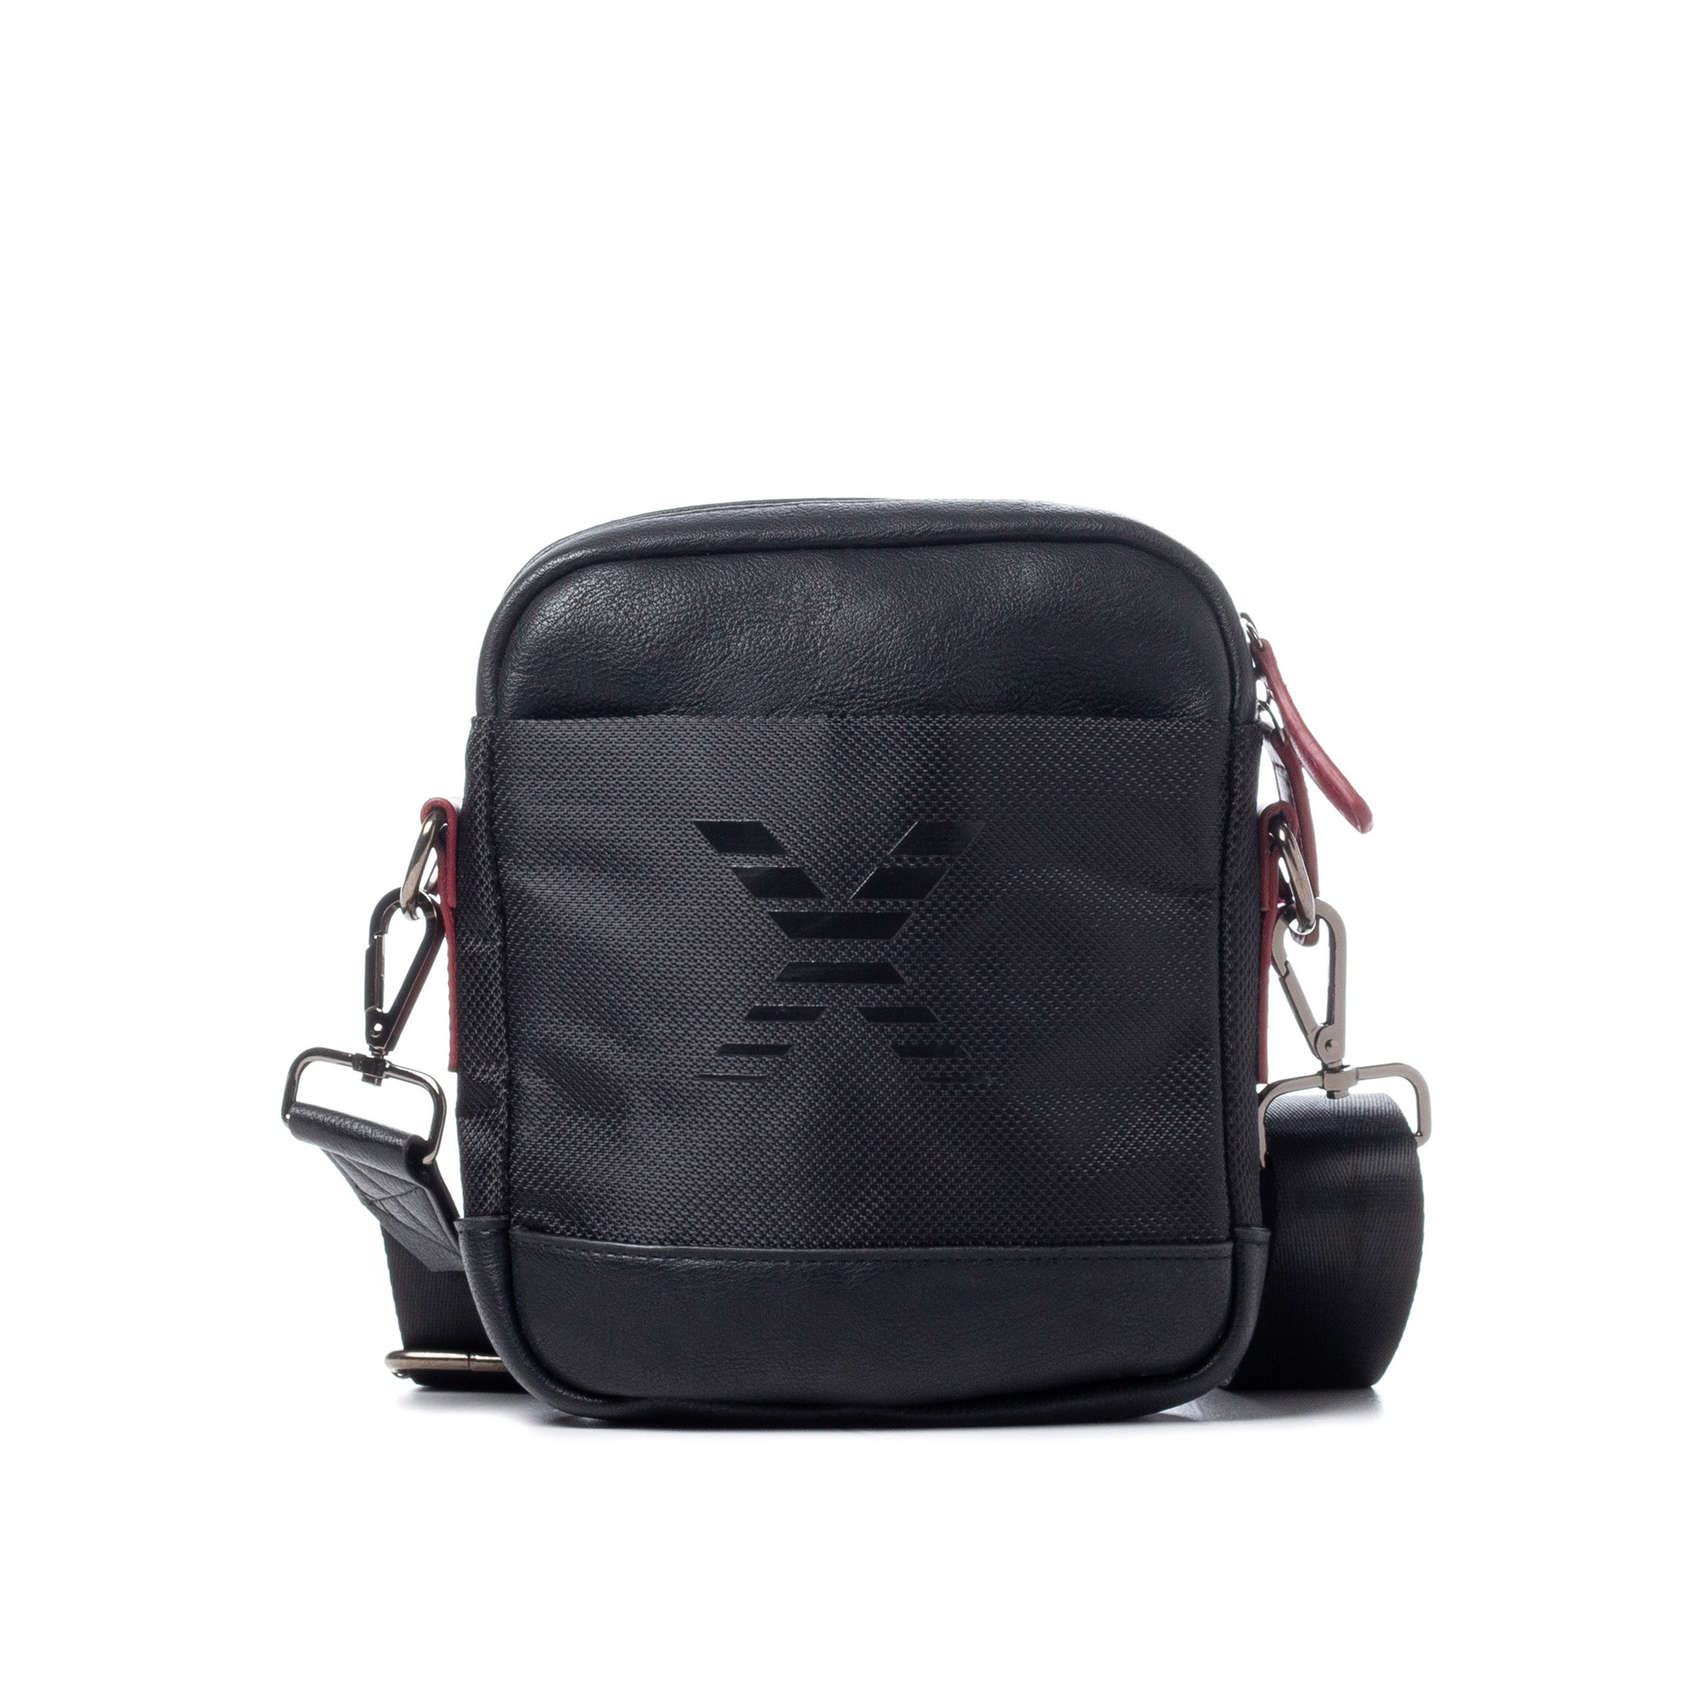 CITY SMALL CROSSBODY BLACK